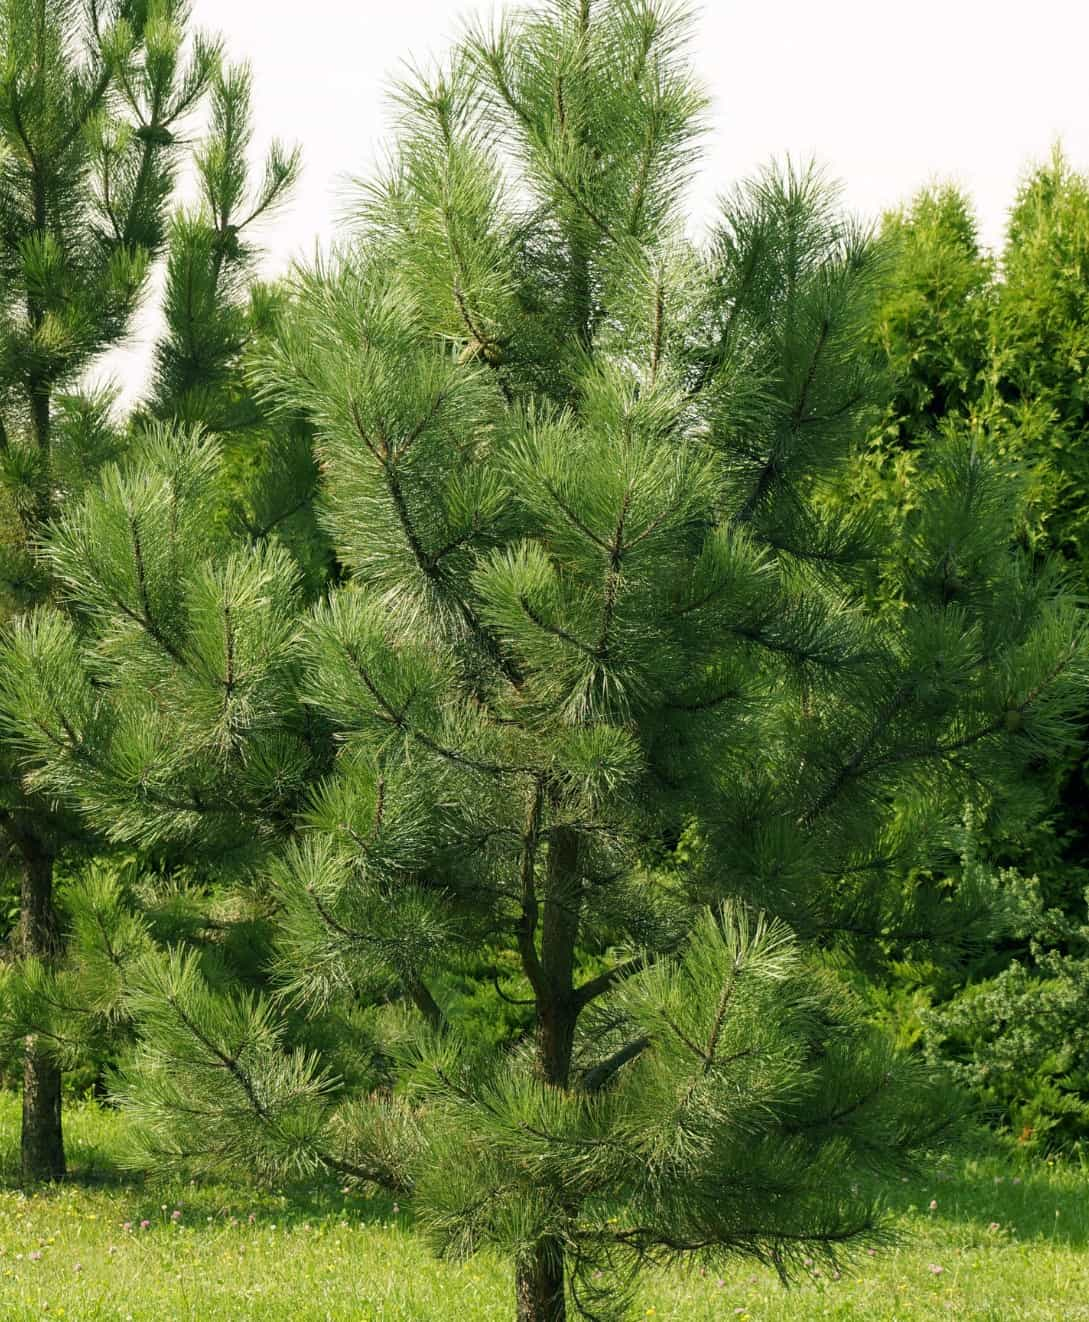 Pine trees provide color all year long.